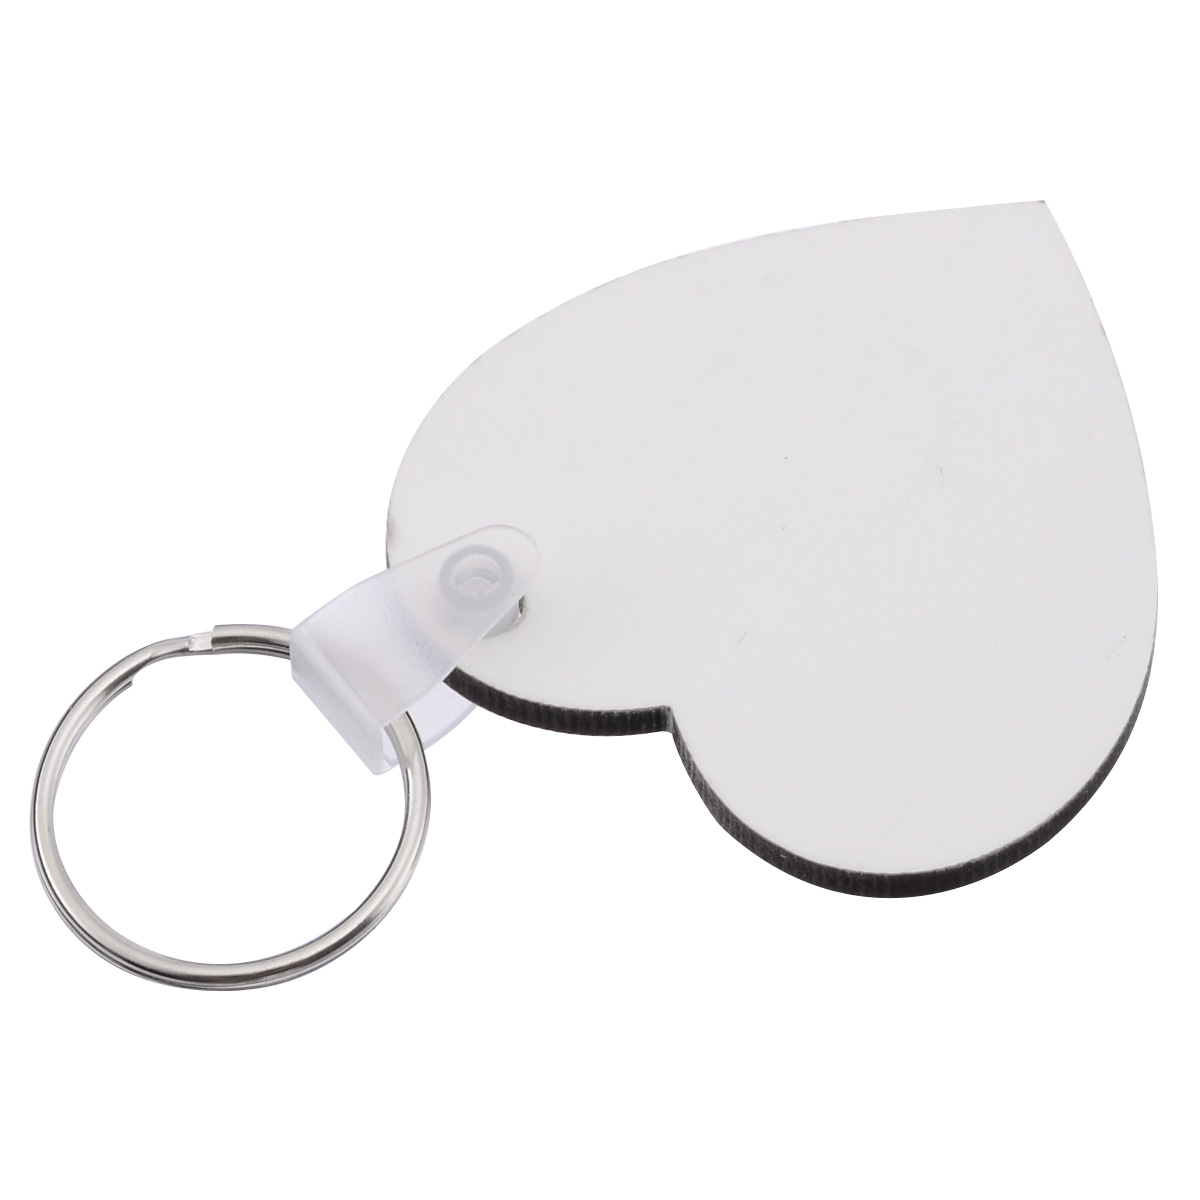 10pcs New Special Heart Blank Board Sublimation Printing Keyrings MDF Sublimation Key Rings For Heat Press Machine10pcs New Special Heart Blank Board Sublimation Printing Keyrings MDF Sublimation Key Rings For Heat Press Machine